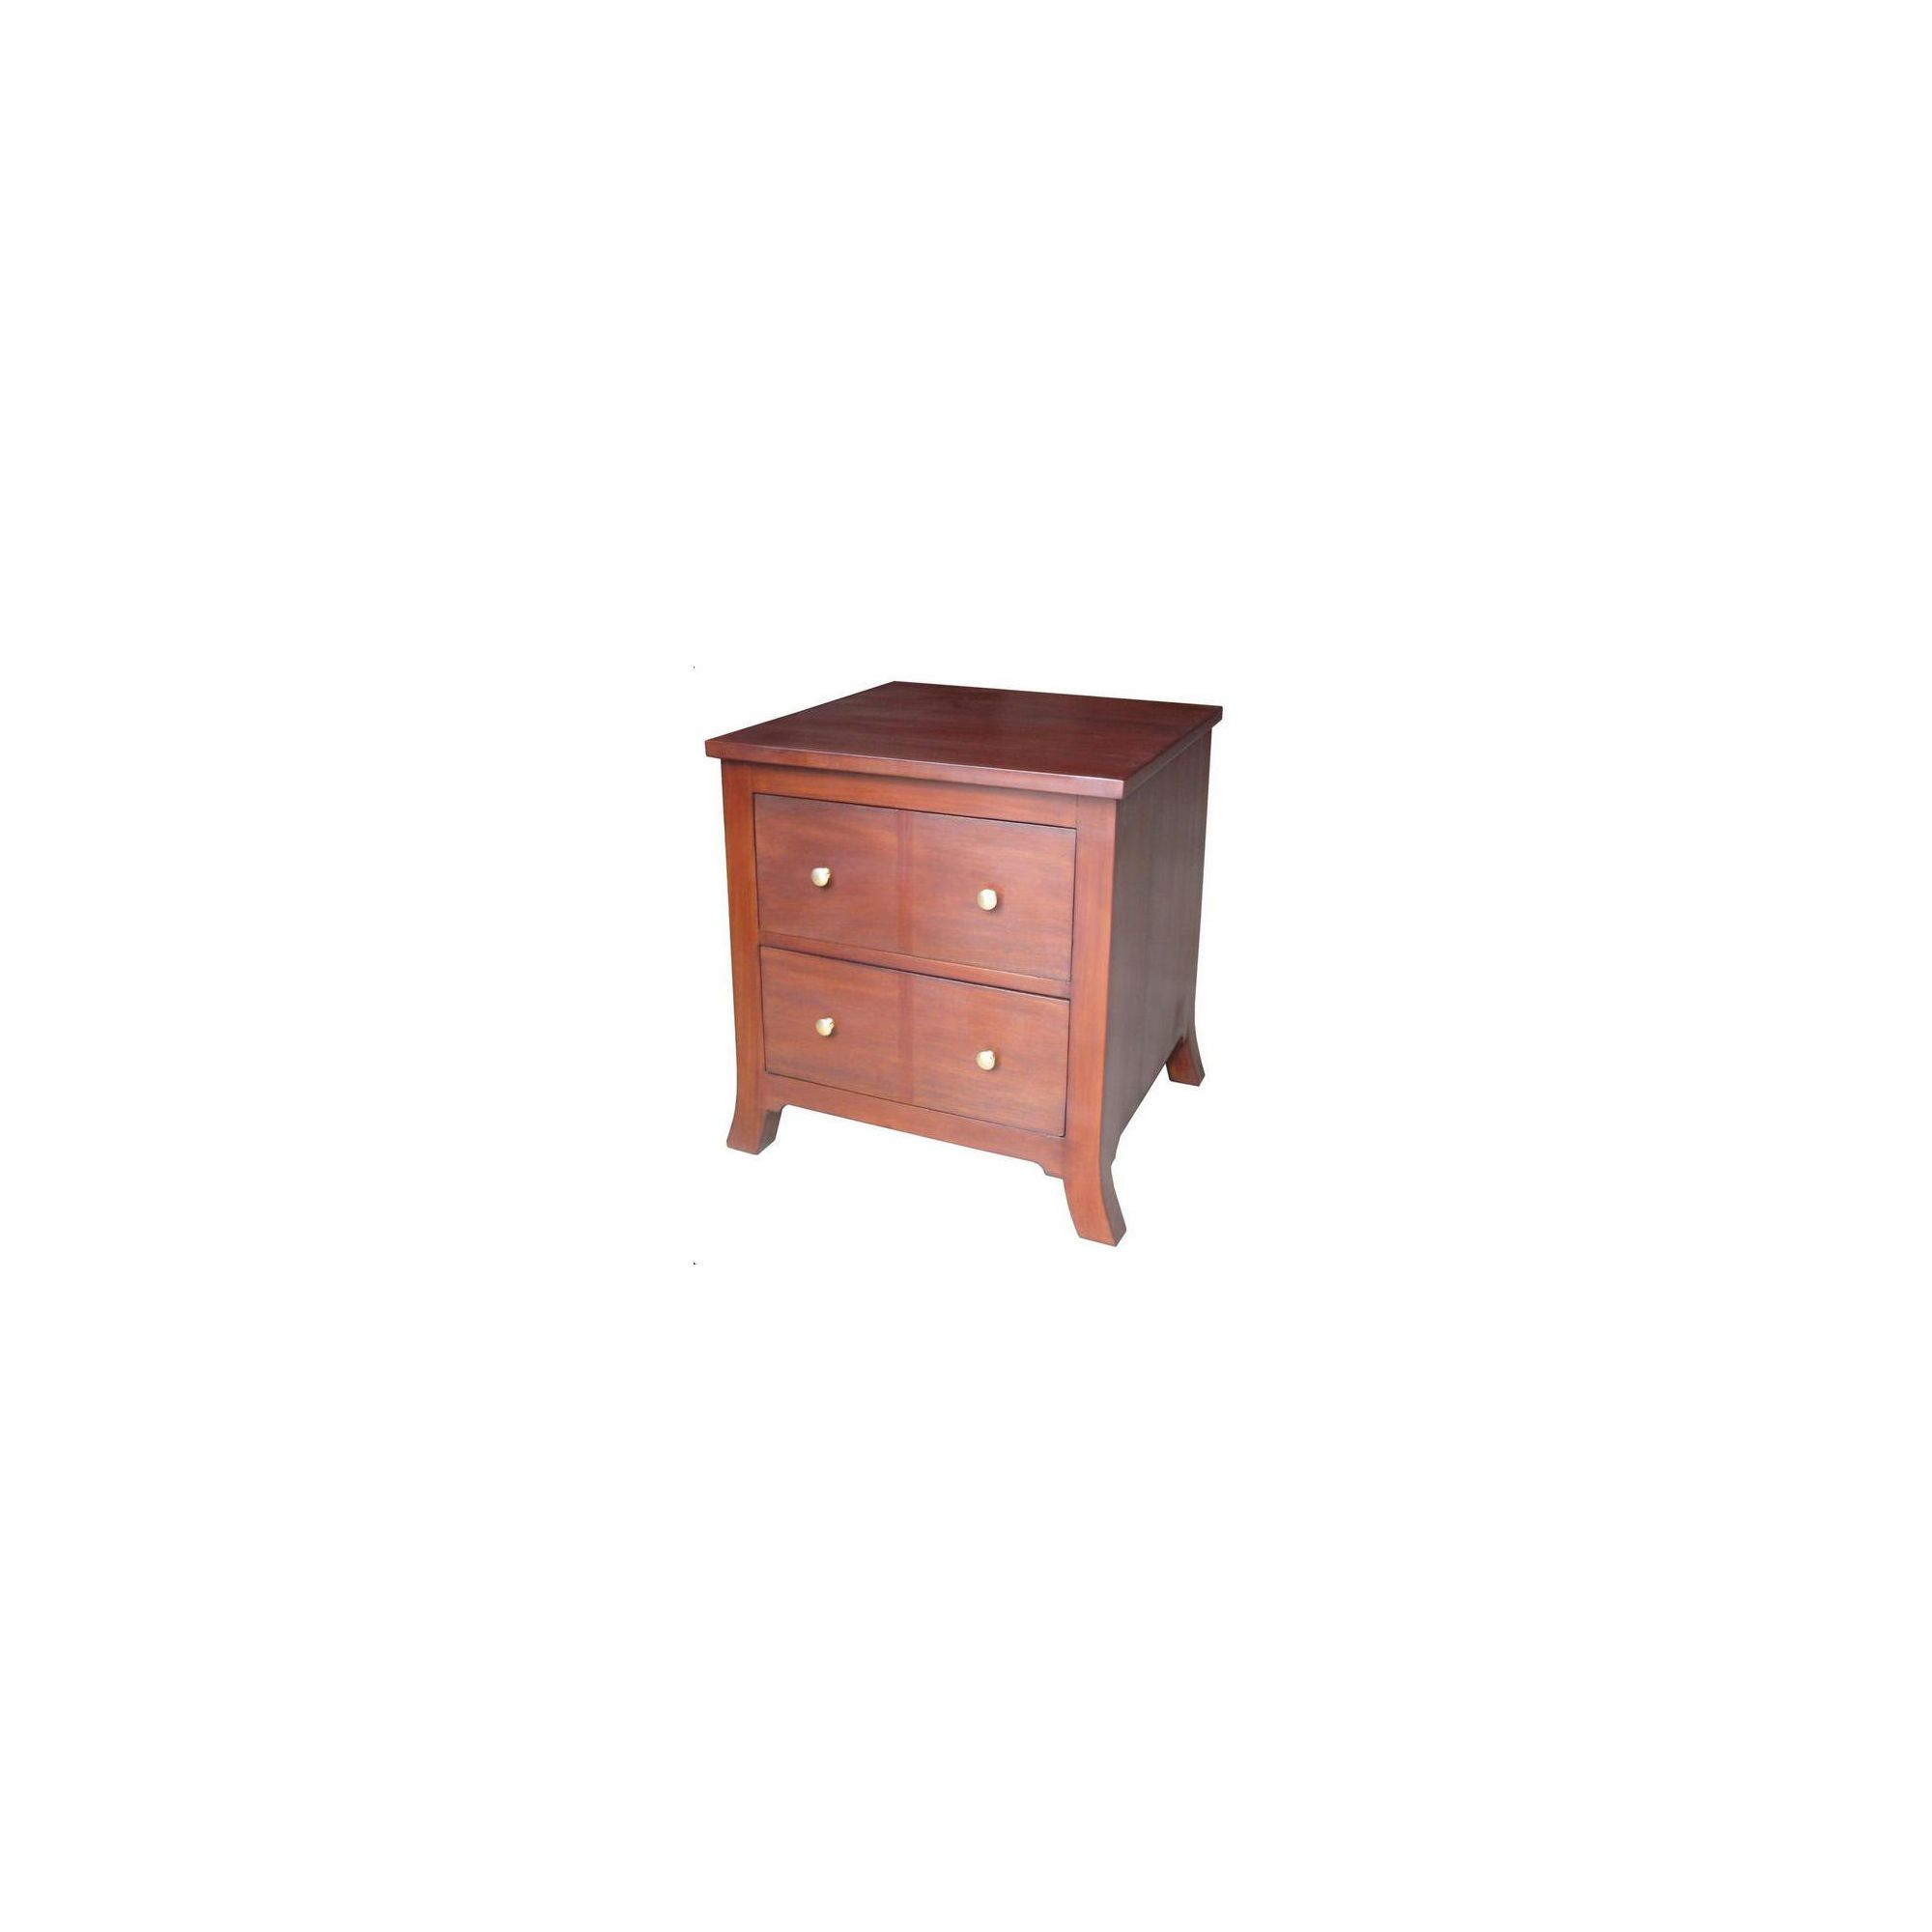 Lock stock and barrel Mahogany Orchard Lamp Box with 2 Drawers in Mahogany at Tesco Direct